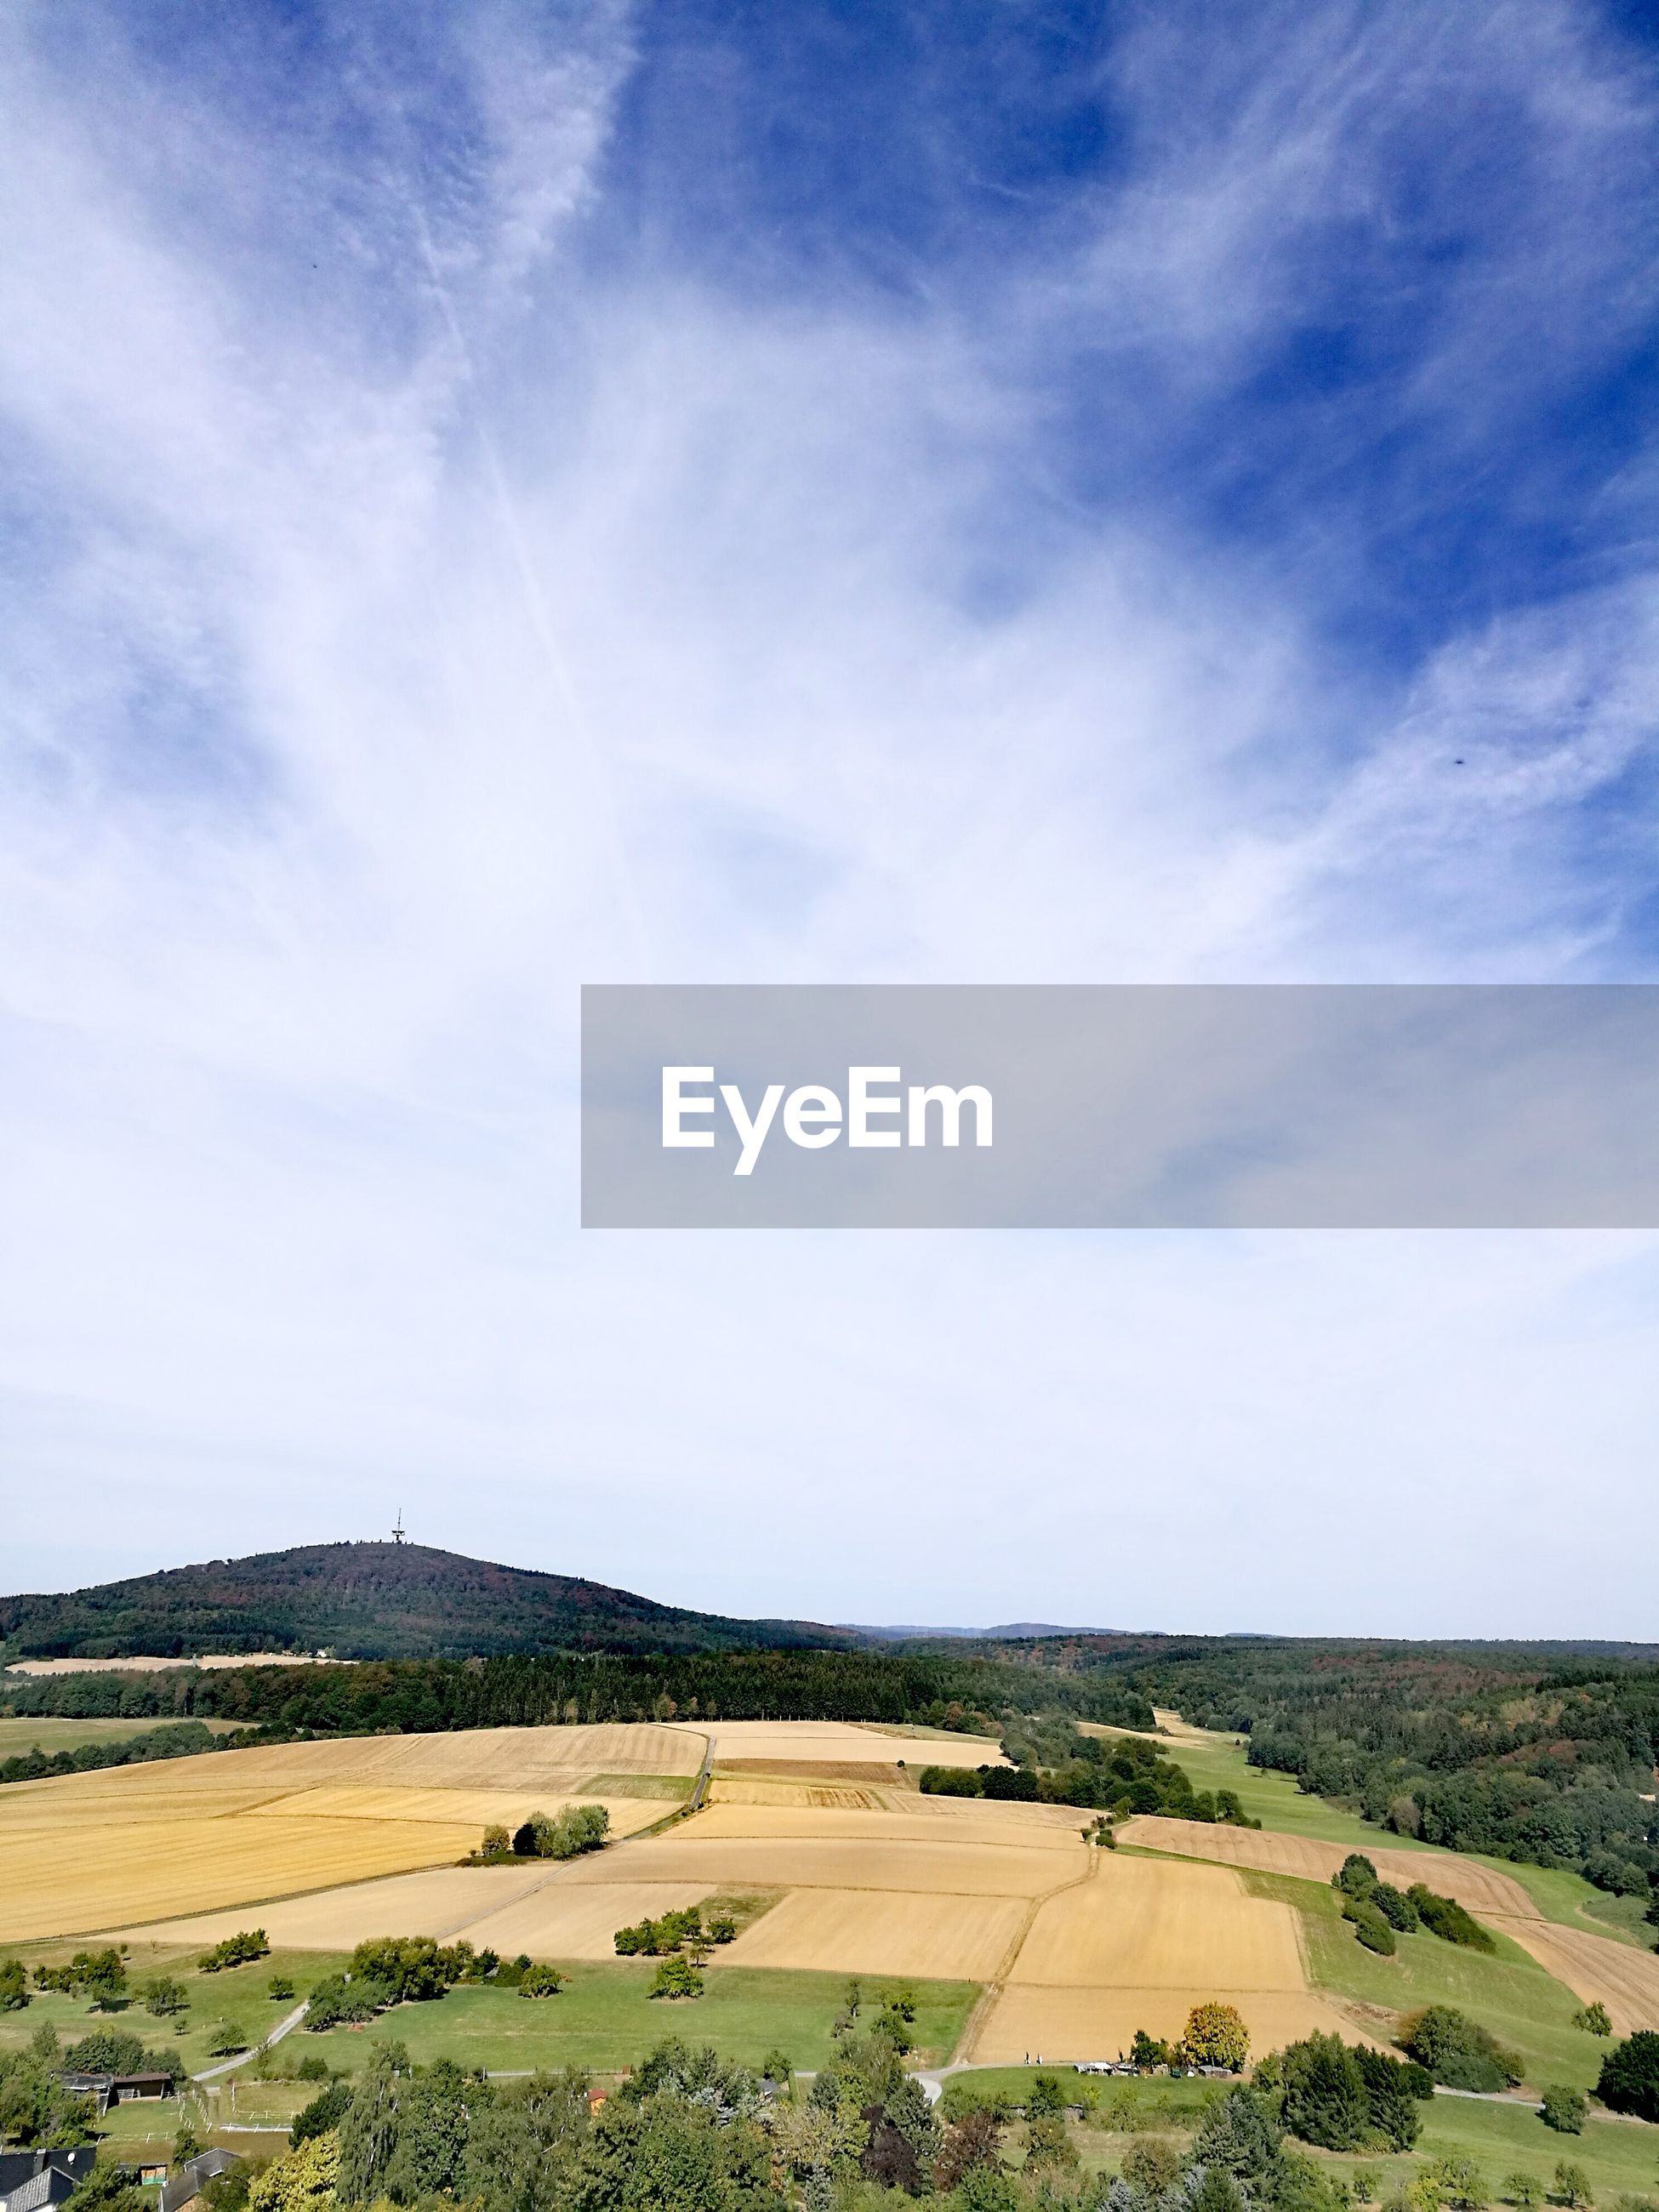 VIEW OF RURAL LANDSCAPE AGAINST CLOUDY SKY